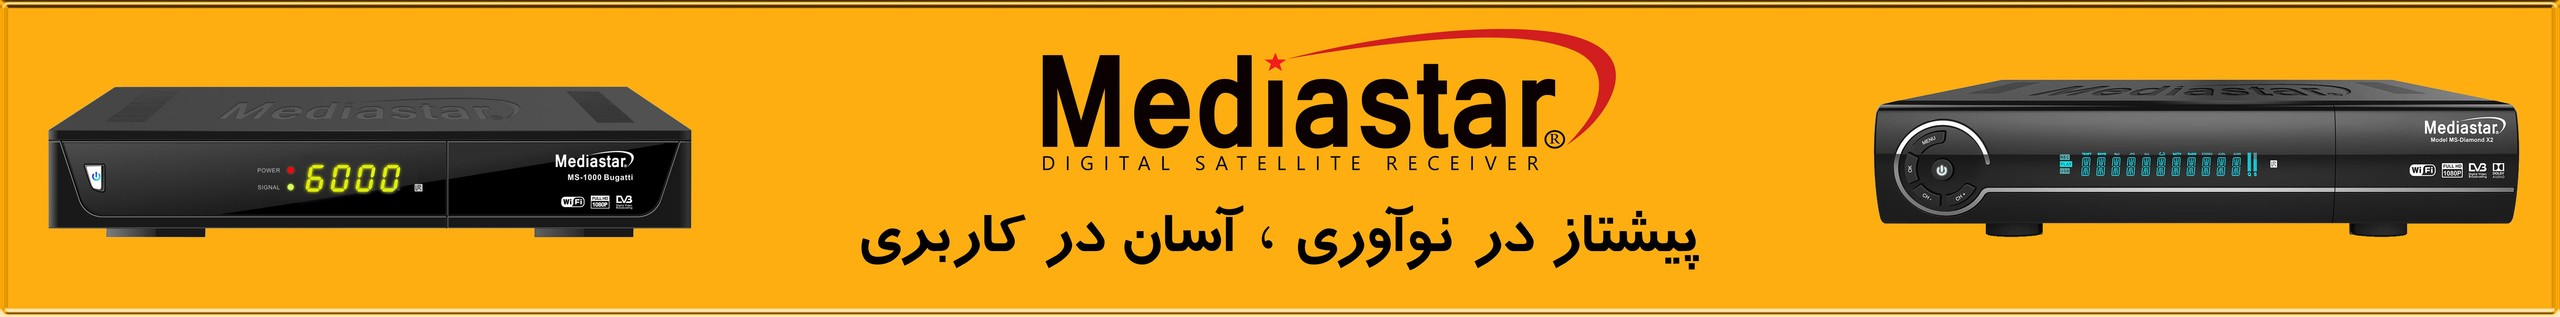 Mediastar Digital Satellite Receiver